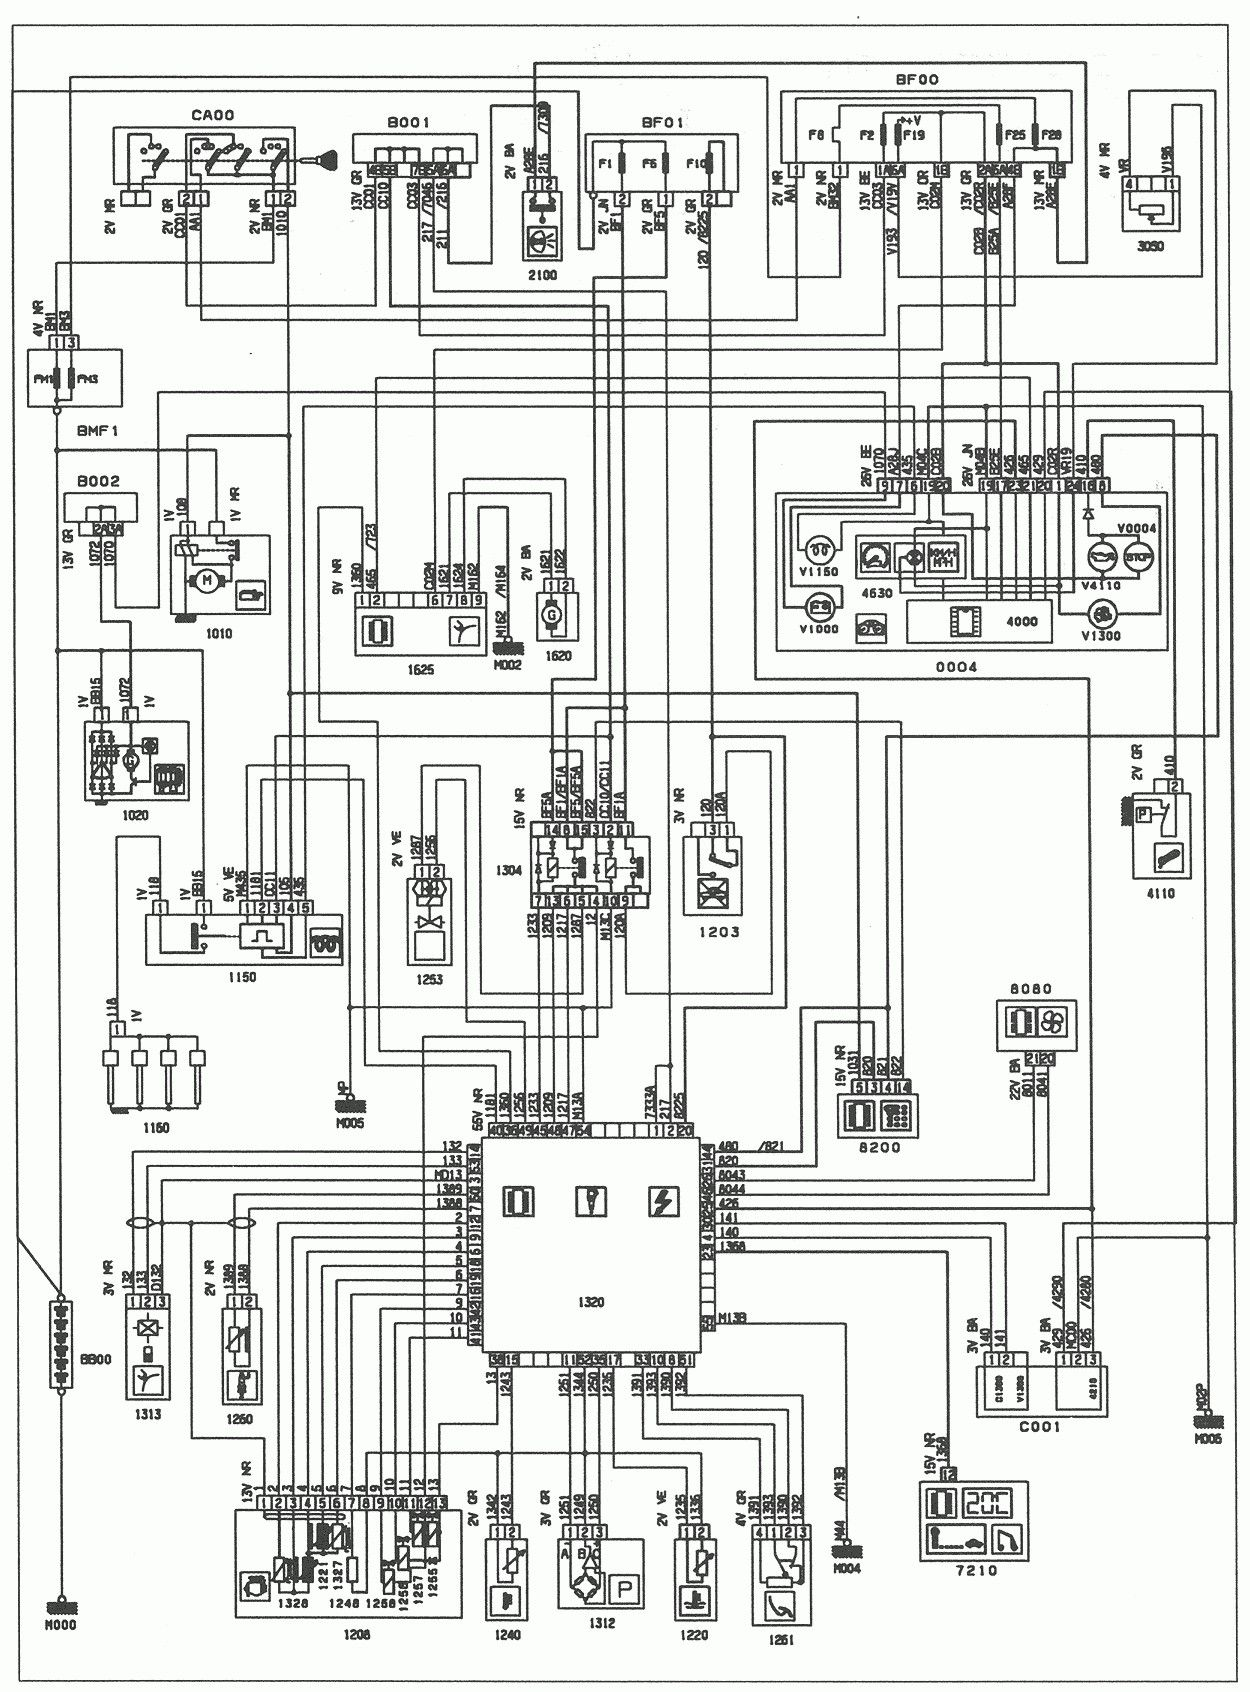 Unique Citroen Dispatch Glow Plug Relay Wiring Diagram